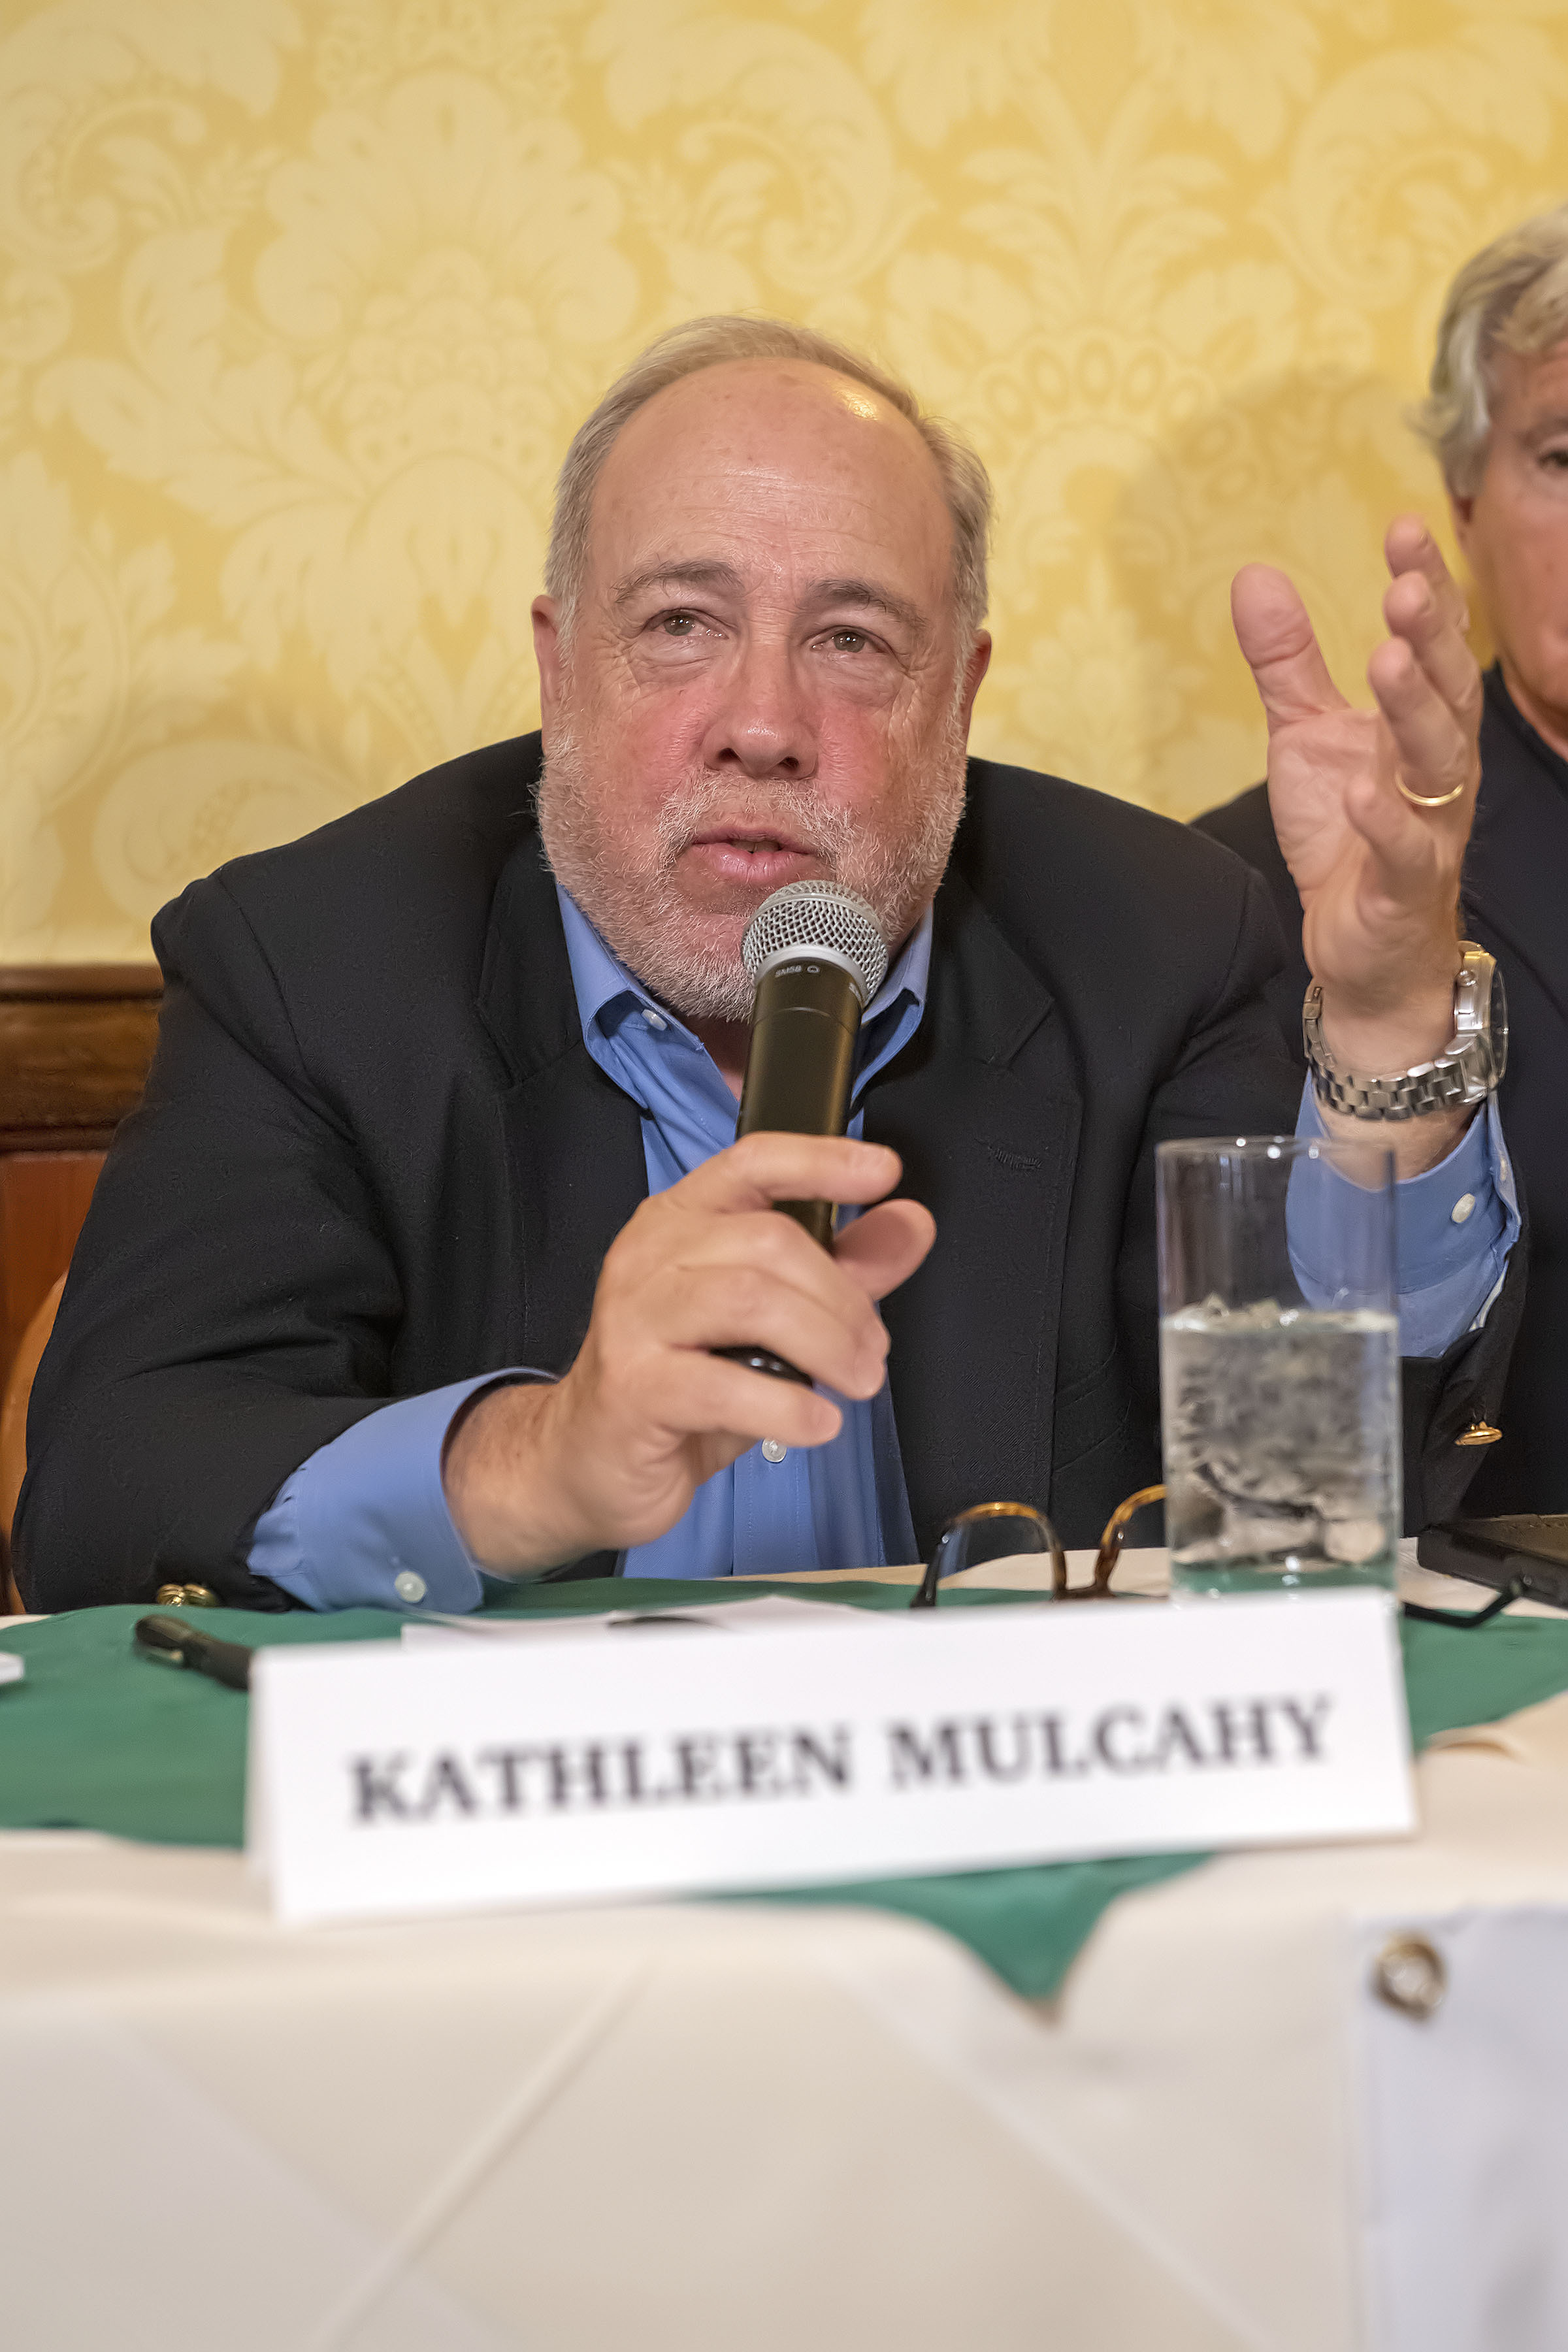 Panelist Edmund Hollander speaks during the Express Sessions - Sag Harbor Public Spaces event at the American Hotel in Sag Harbor on Friday.     MICHAEL HELLER